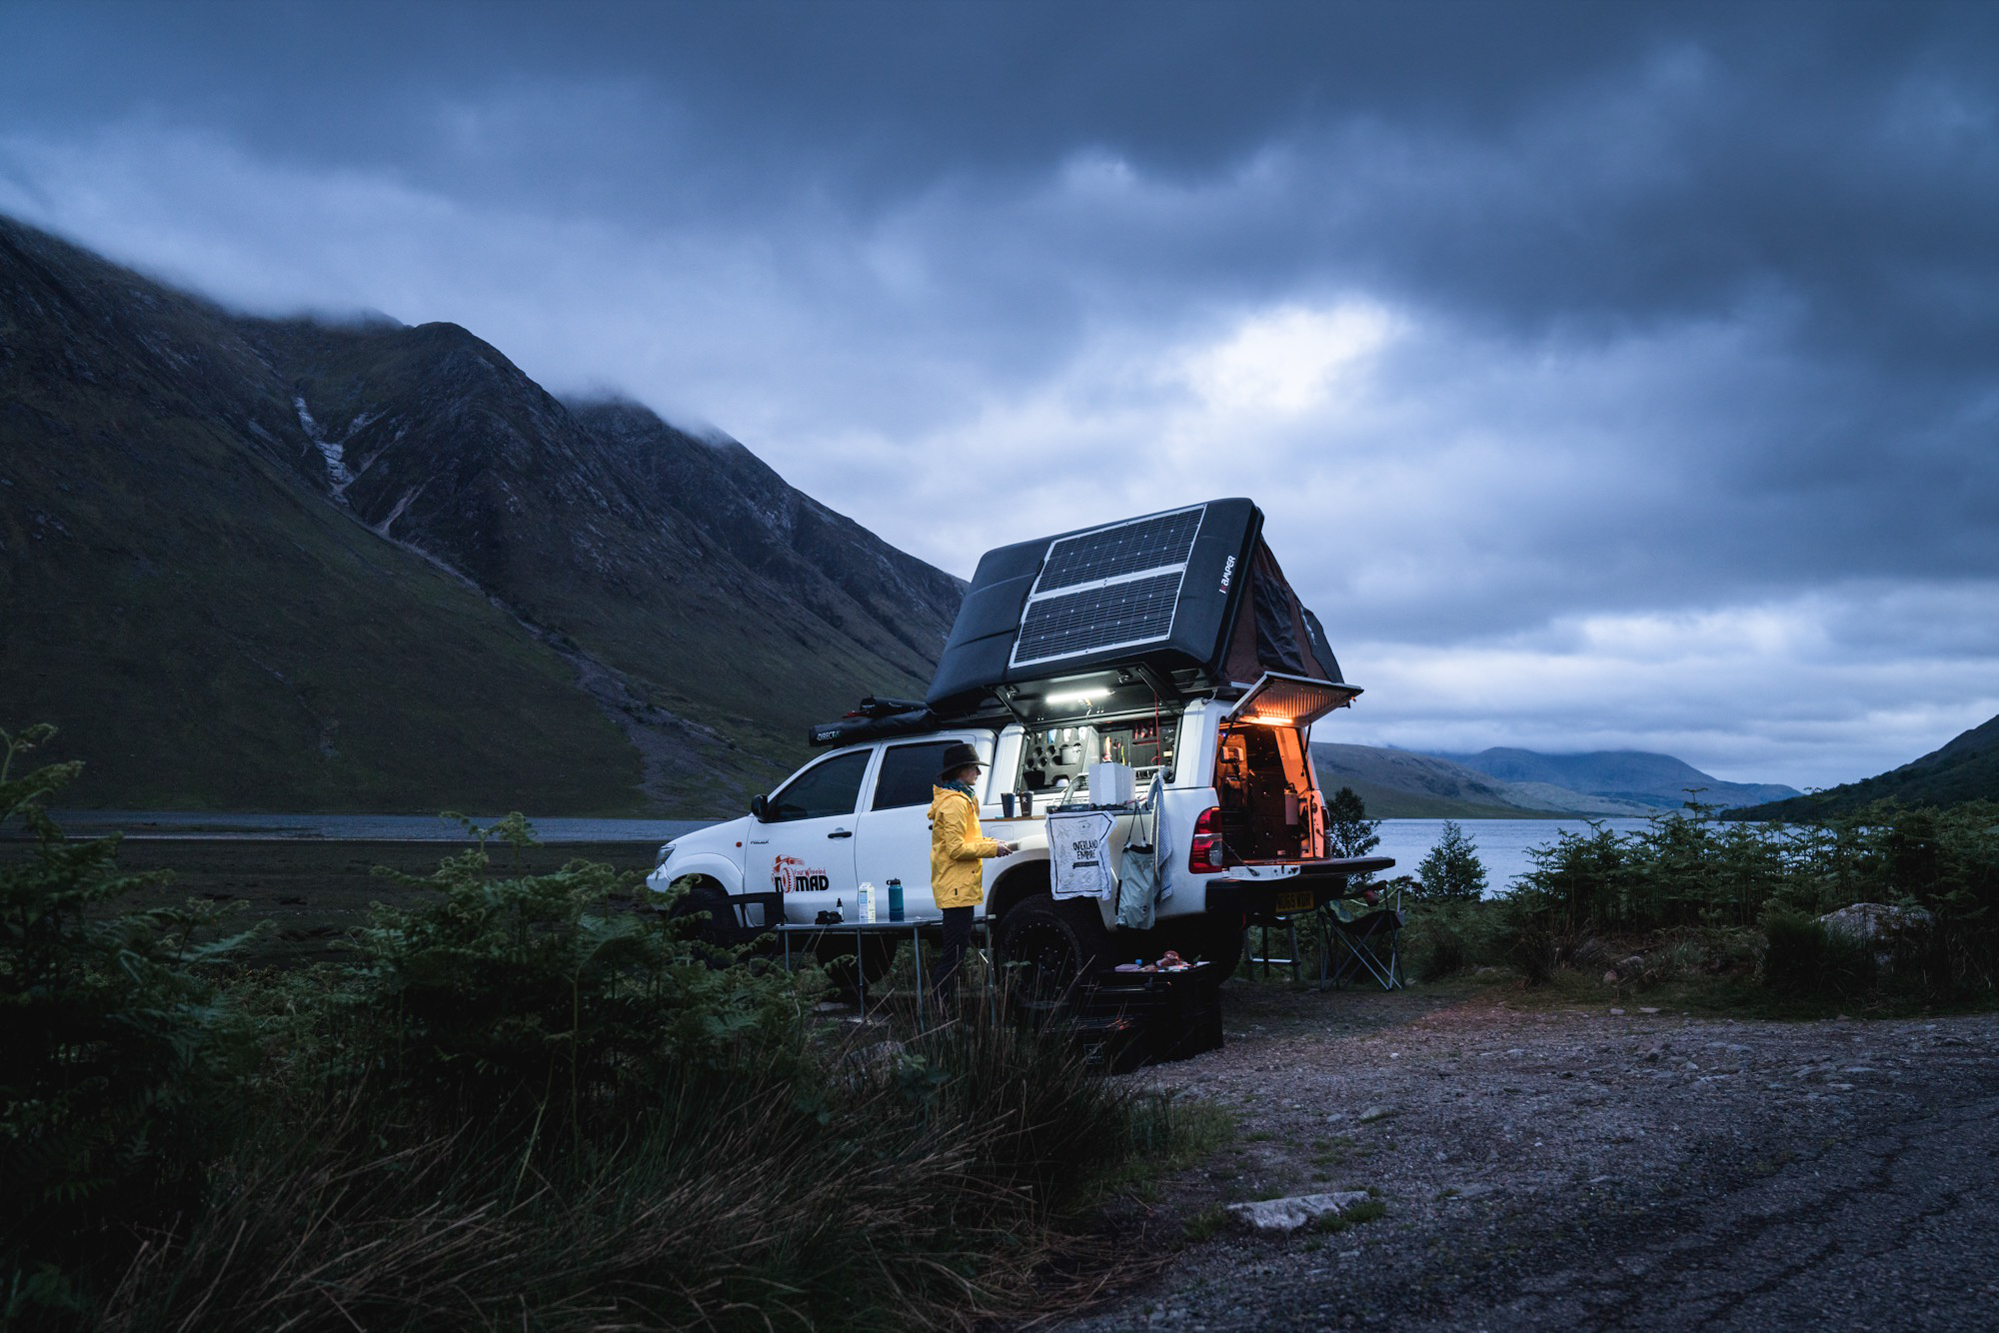 Building a Hilux to Travel From Norway to South Africa - Expedition Portal